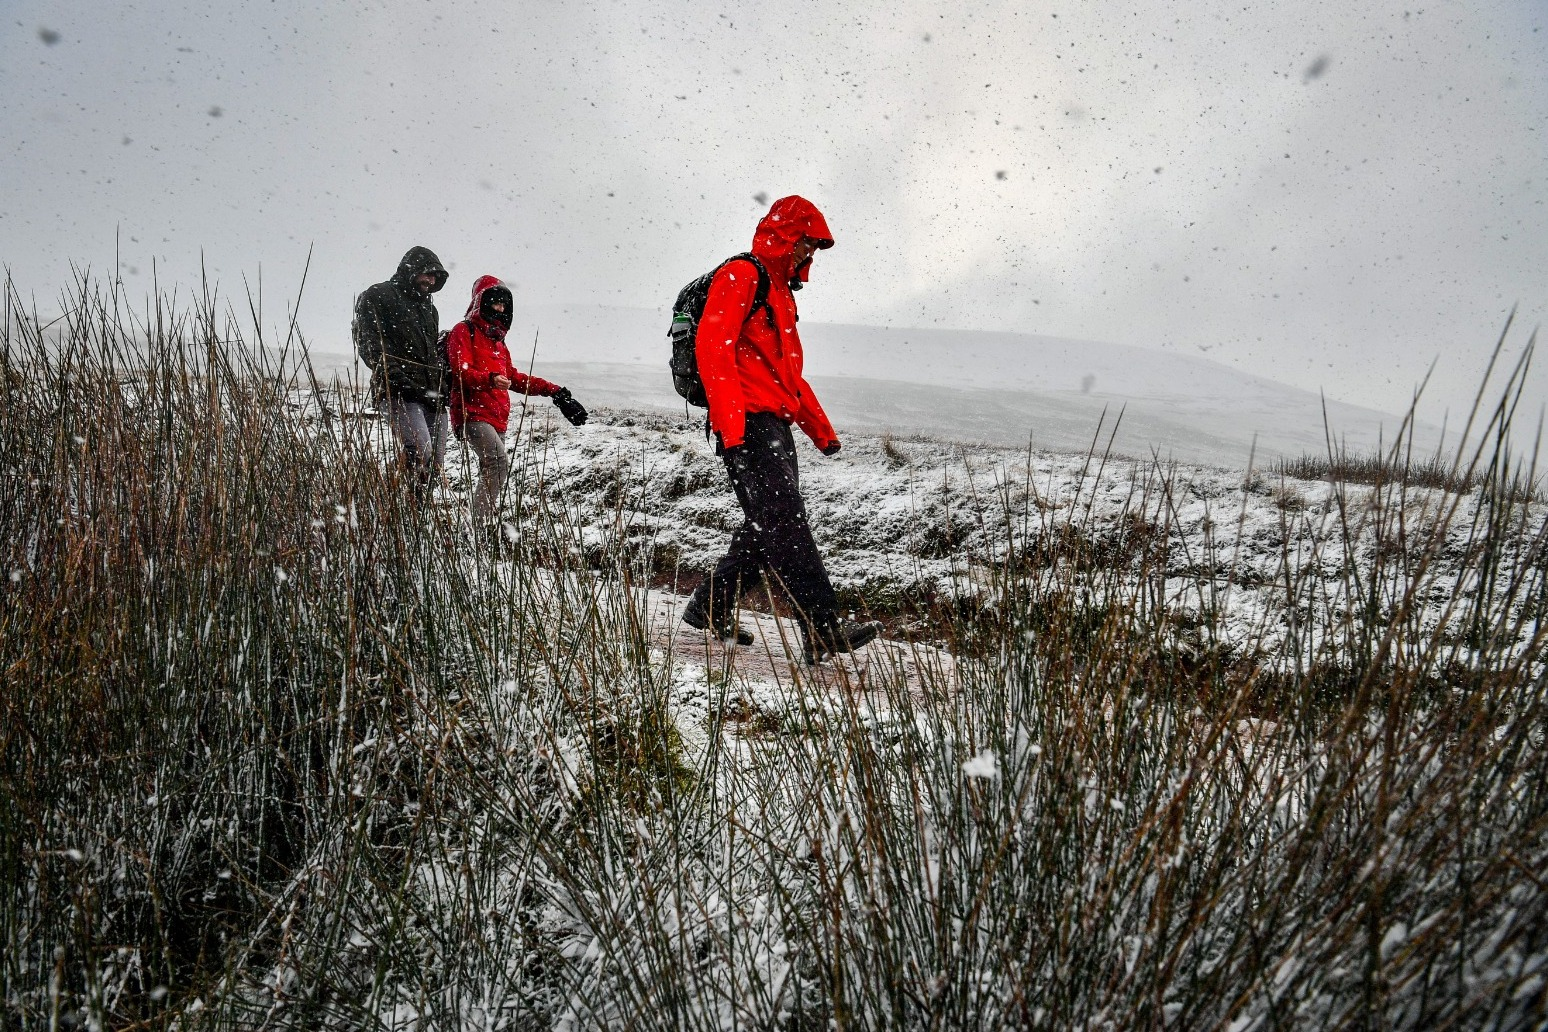 Snow on ground could disappear for most by end of century, Met Office suggests